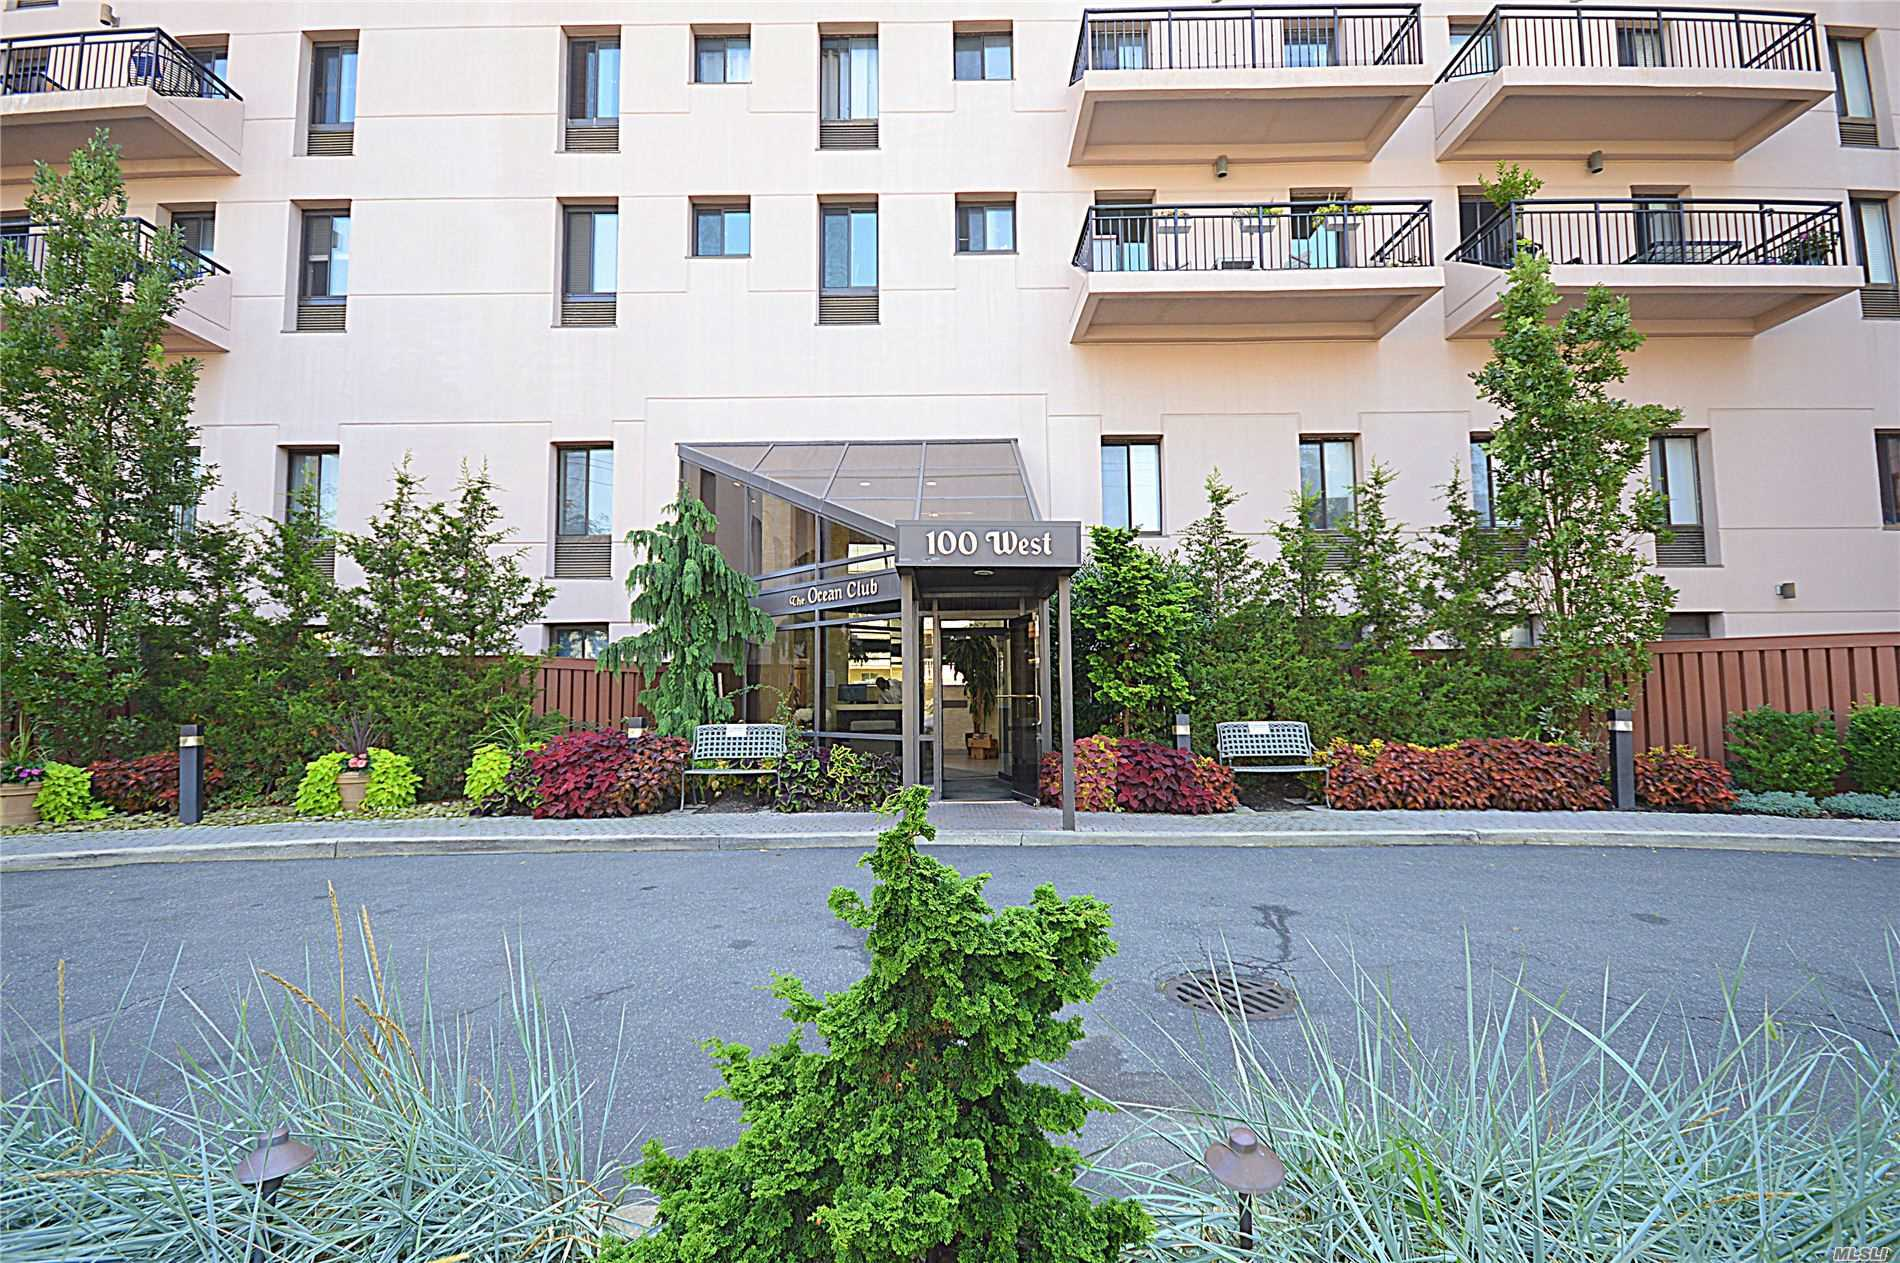 Property for sale at 100 W. Broadway # 2E, Long Beach NY 11561, Long Beach,  New York 11561